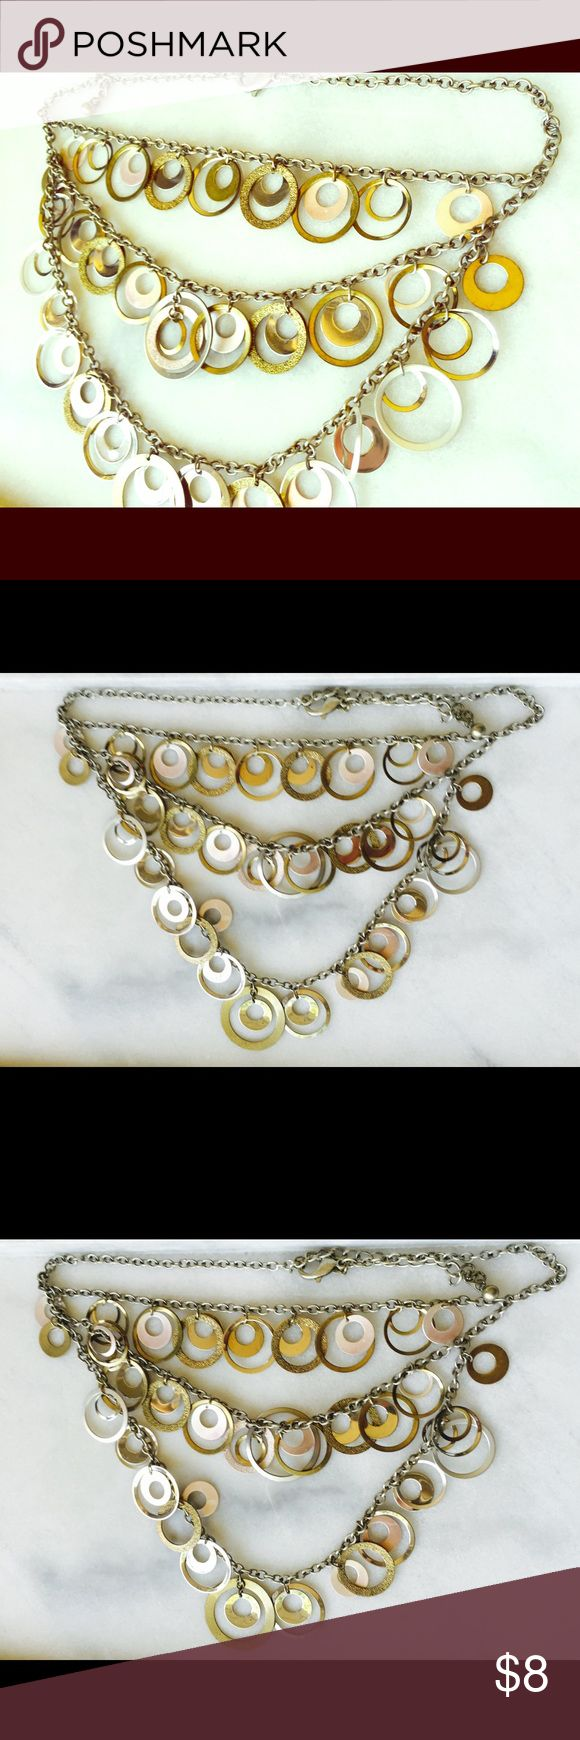 """Chico's 3-Tier Bib Statement Necklace 21"""" long. Bib has 6"""" drop. Super eccentric and unique. Some circles have minor wear but isn't noticeable. Chico's Jewelry Necklaces"""